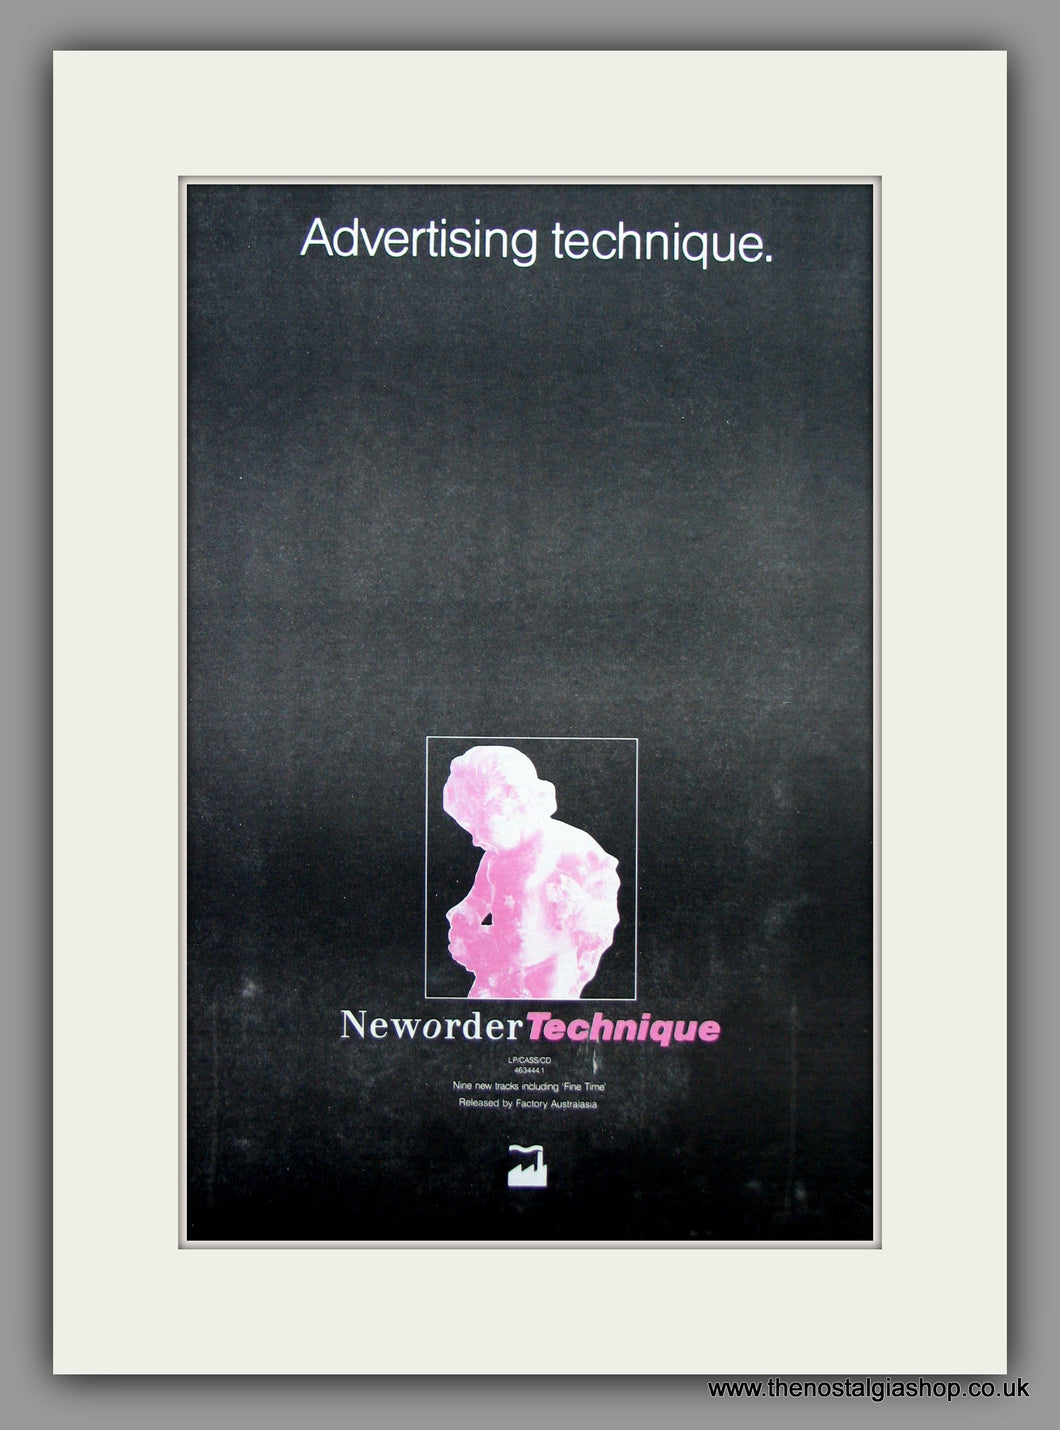 Neworder. Technique. Original Vintage Advert 1989 (ref AD10454)